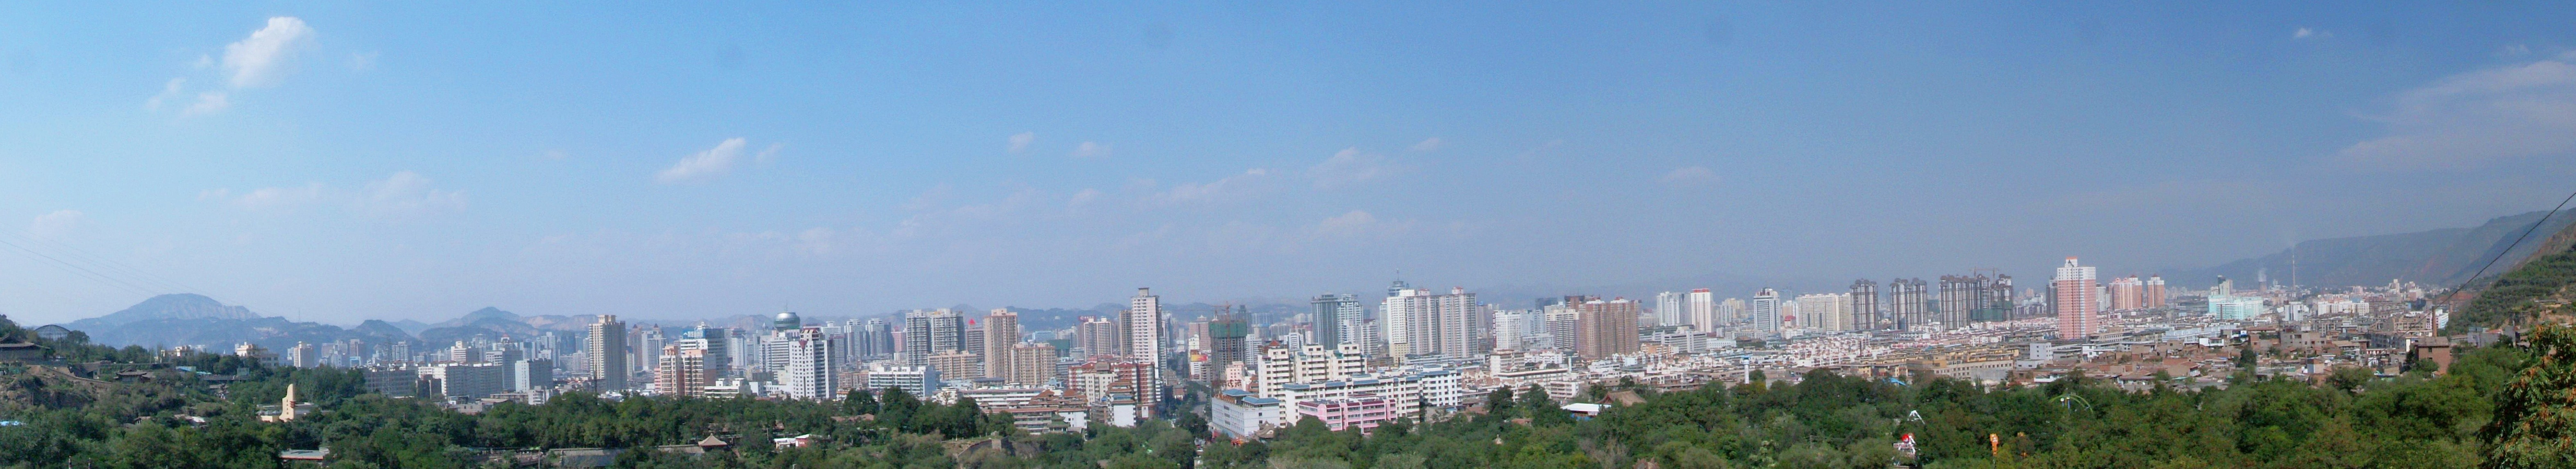 Yangquan China  city pictures gallery : Lanzhou city from Five Springs Park Wikipedia, the free ...